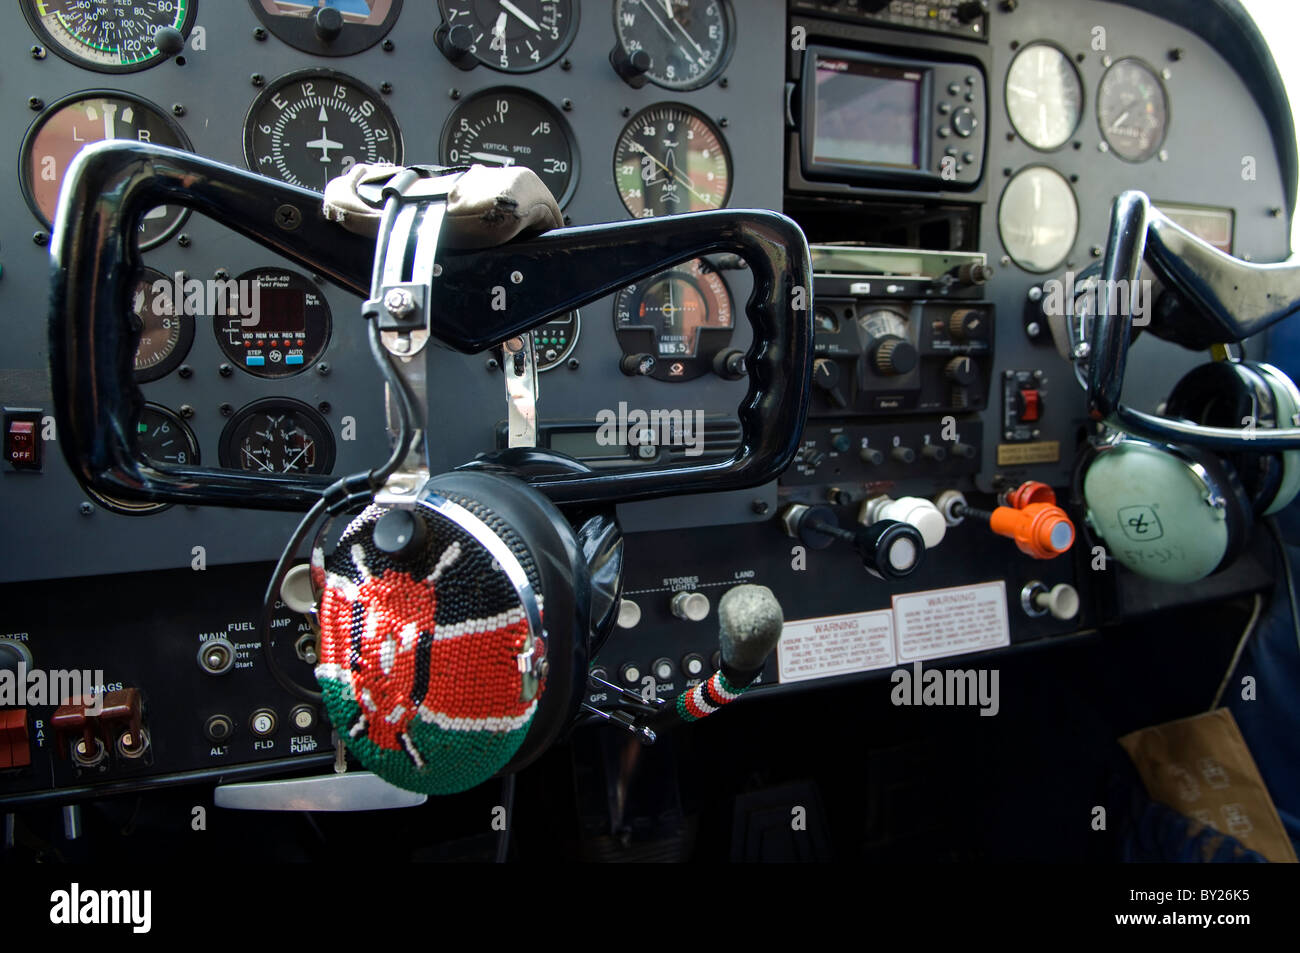 Kenya;  The controls of a Cessna light aircraft.  The pilot's headset is covered in a beaded Kenyan flag. Stock Photo